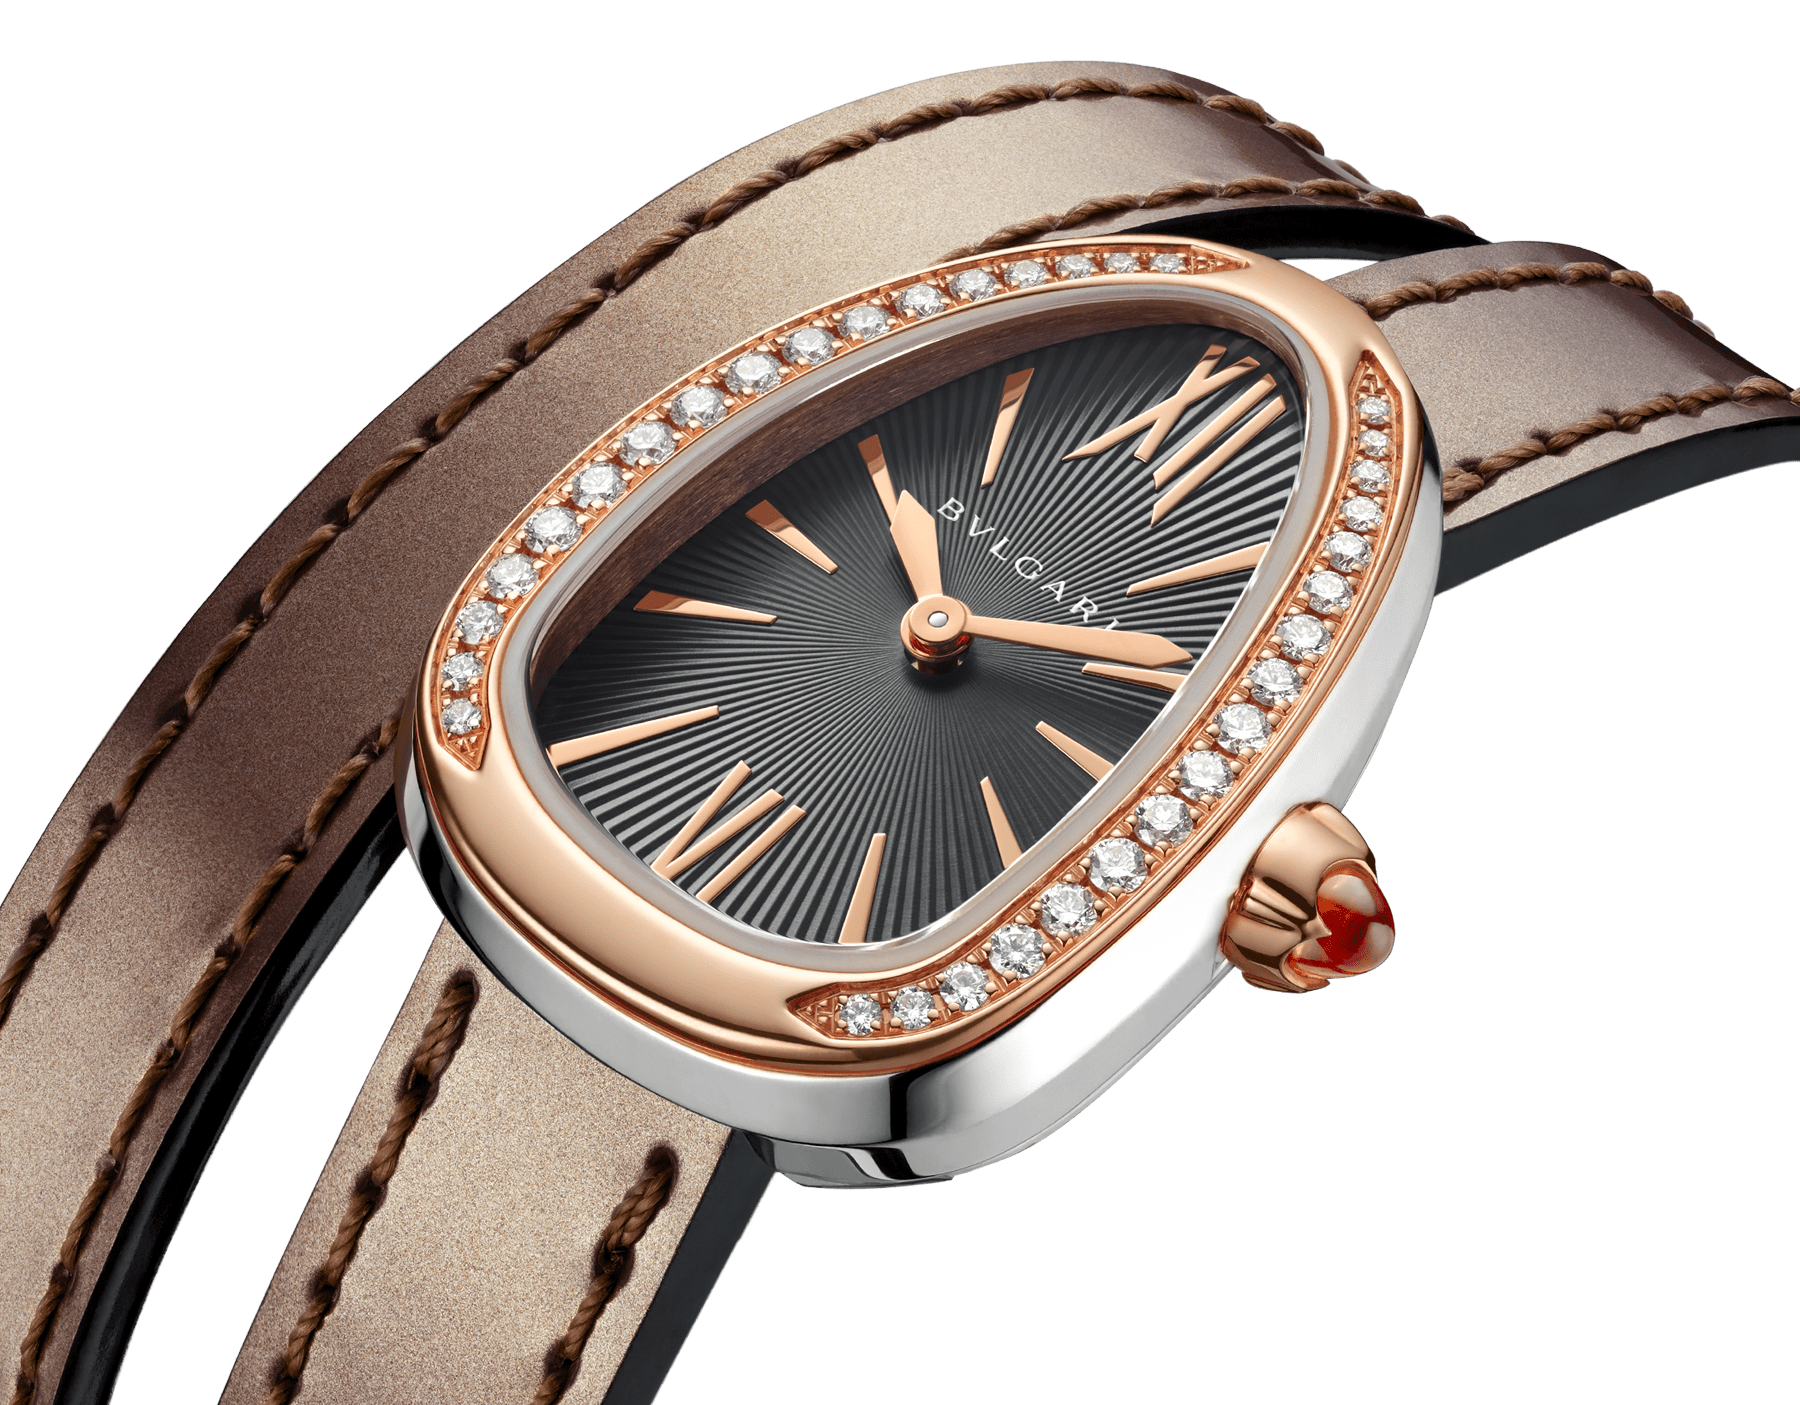 Serpenti watch with stainless steel case, 18 kt rose gold bezel set with diamonds, grey lacquered dial and interchangeable double spiral bracelet in antique bronze brushed metallic calf leather. 102968 image 3